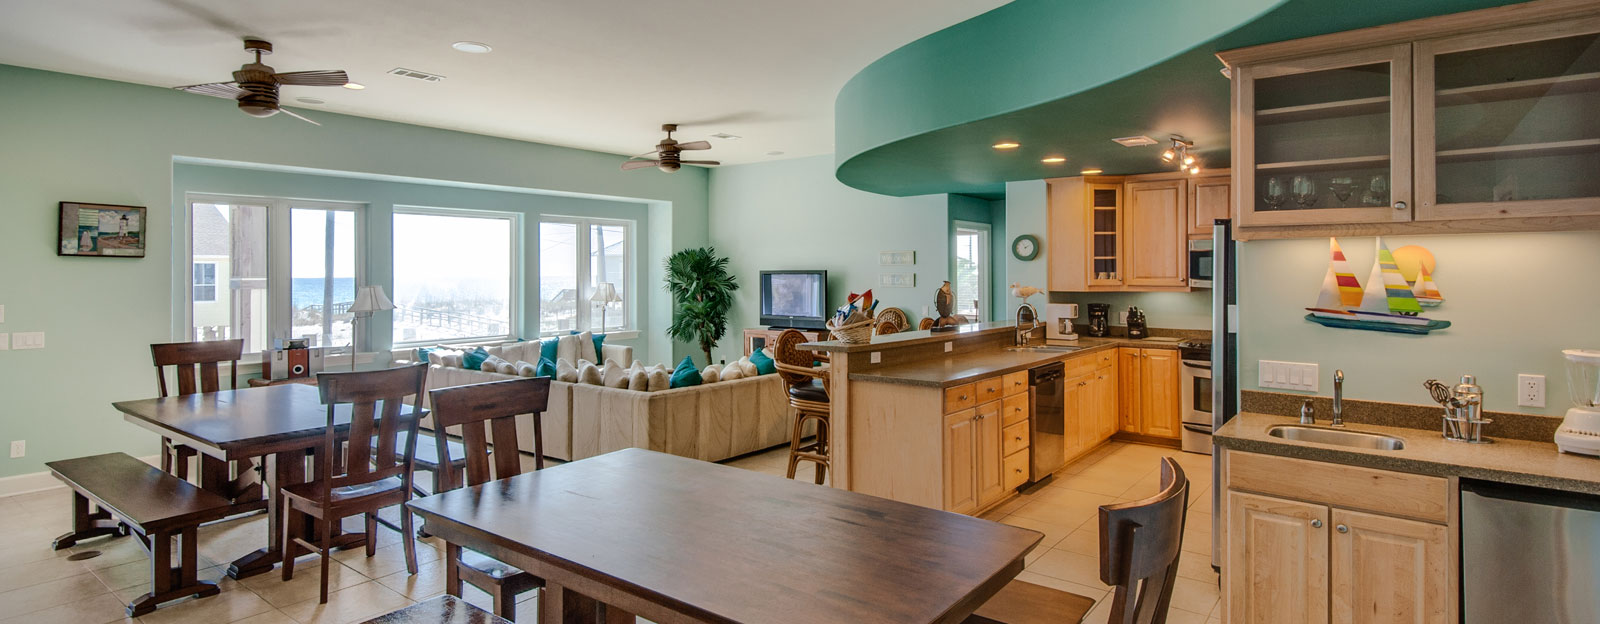 Kitchen and Dining -Paradise Coastal Realty